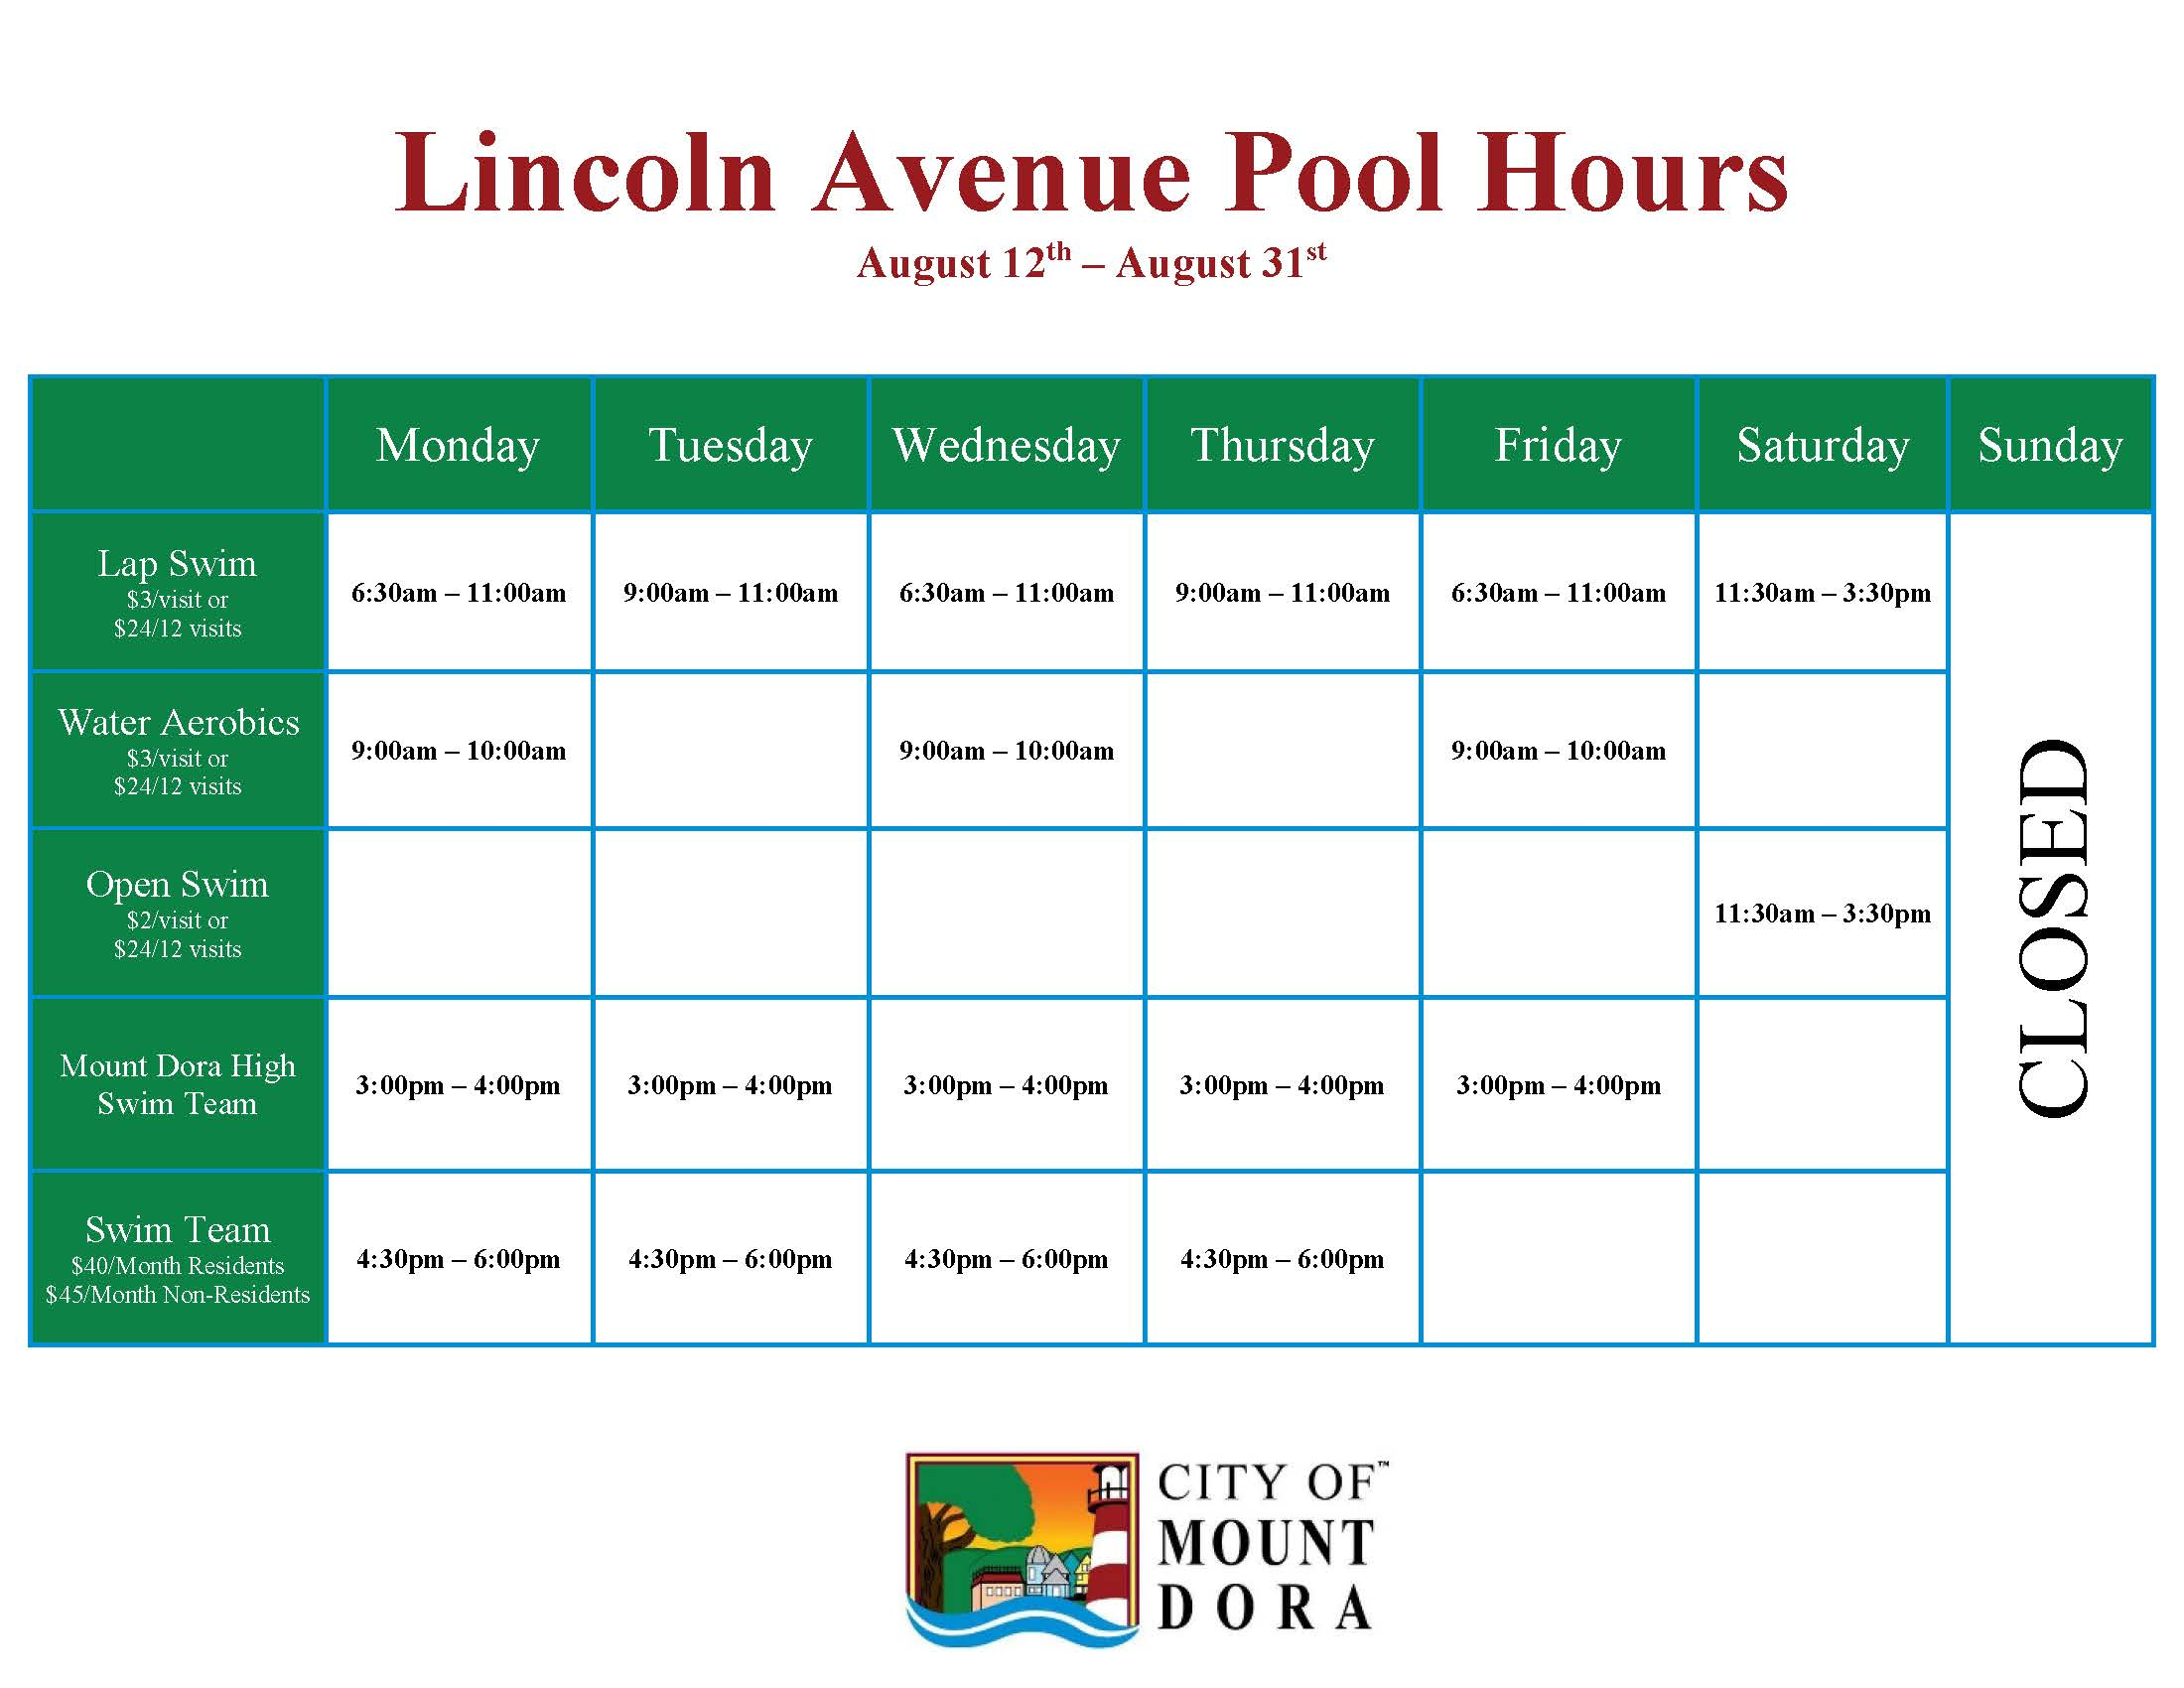 Mount Dora Community Pool Programhttp://ci.mount-dora.fl.us/Admin/DocumentCenter/DocumentForModal/Ad